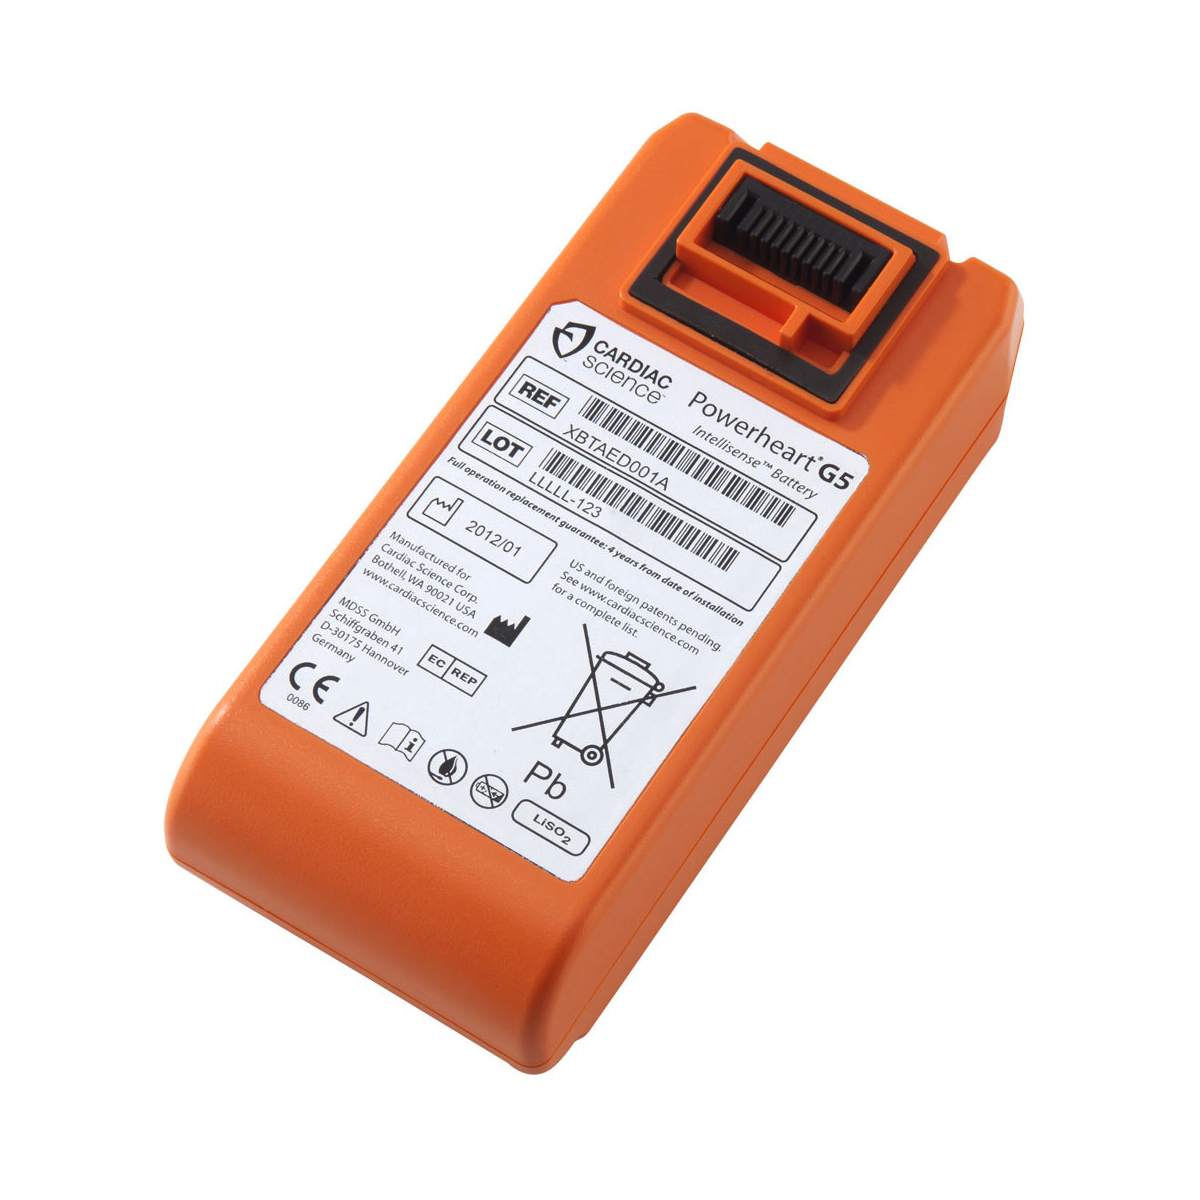 Cardiac Science G5 Replacement Battery Ref CM1206 Up to 7-10 Day Leadtime AED2019